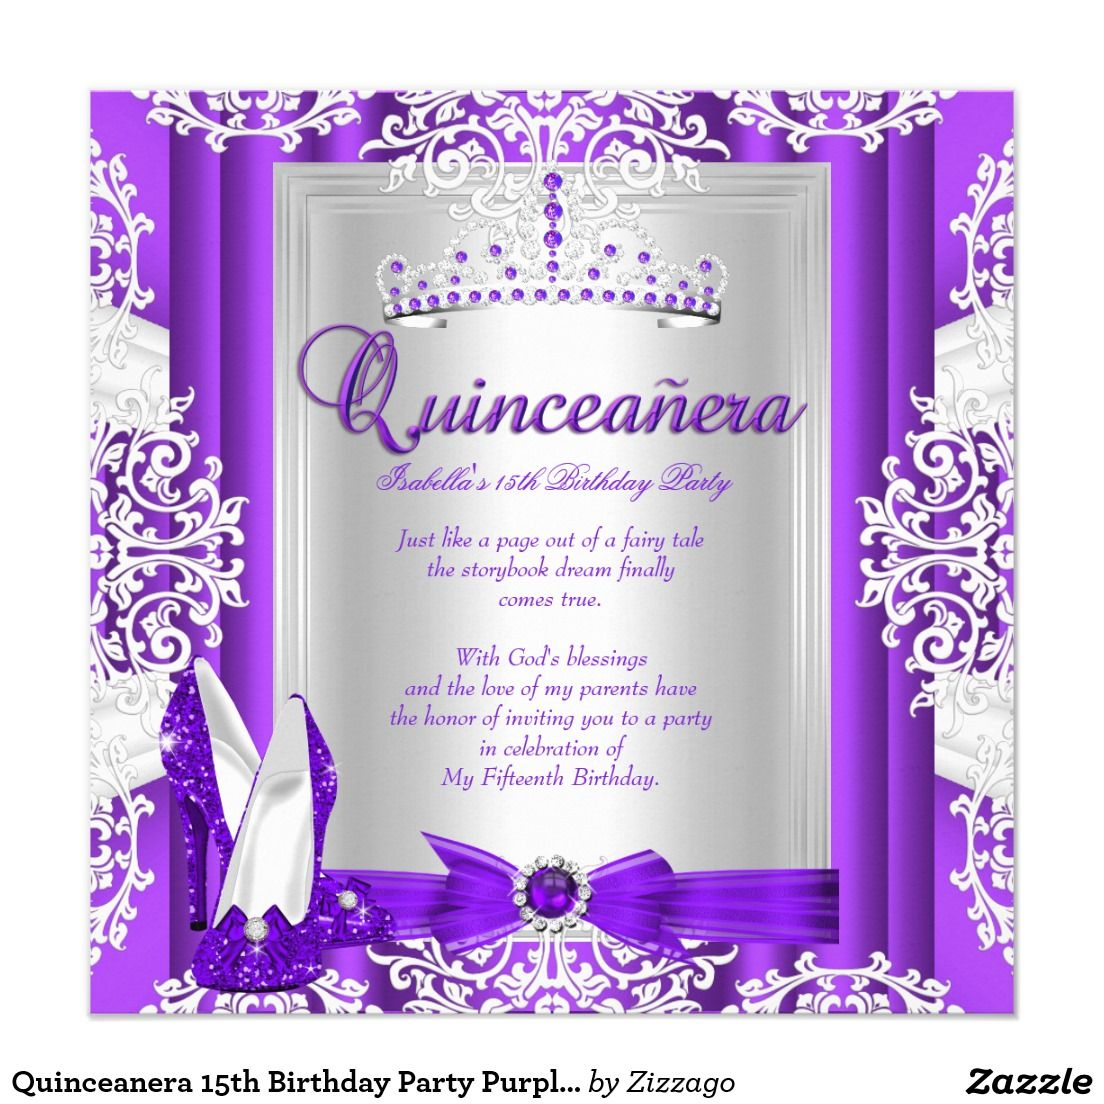 Quinceanera 15th Birthday Party Purple Heels 5.25x5.25 Square Paper ...